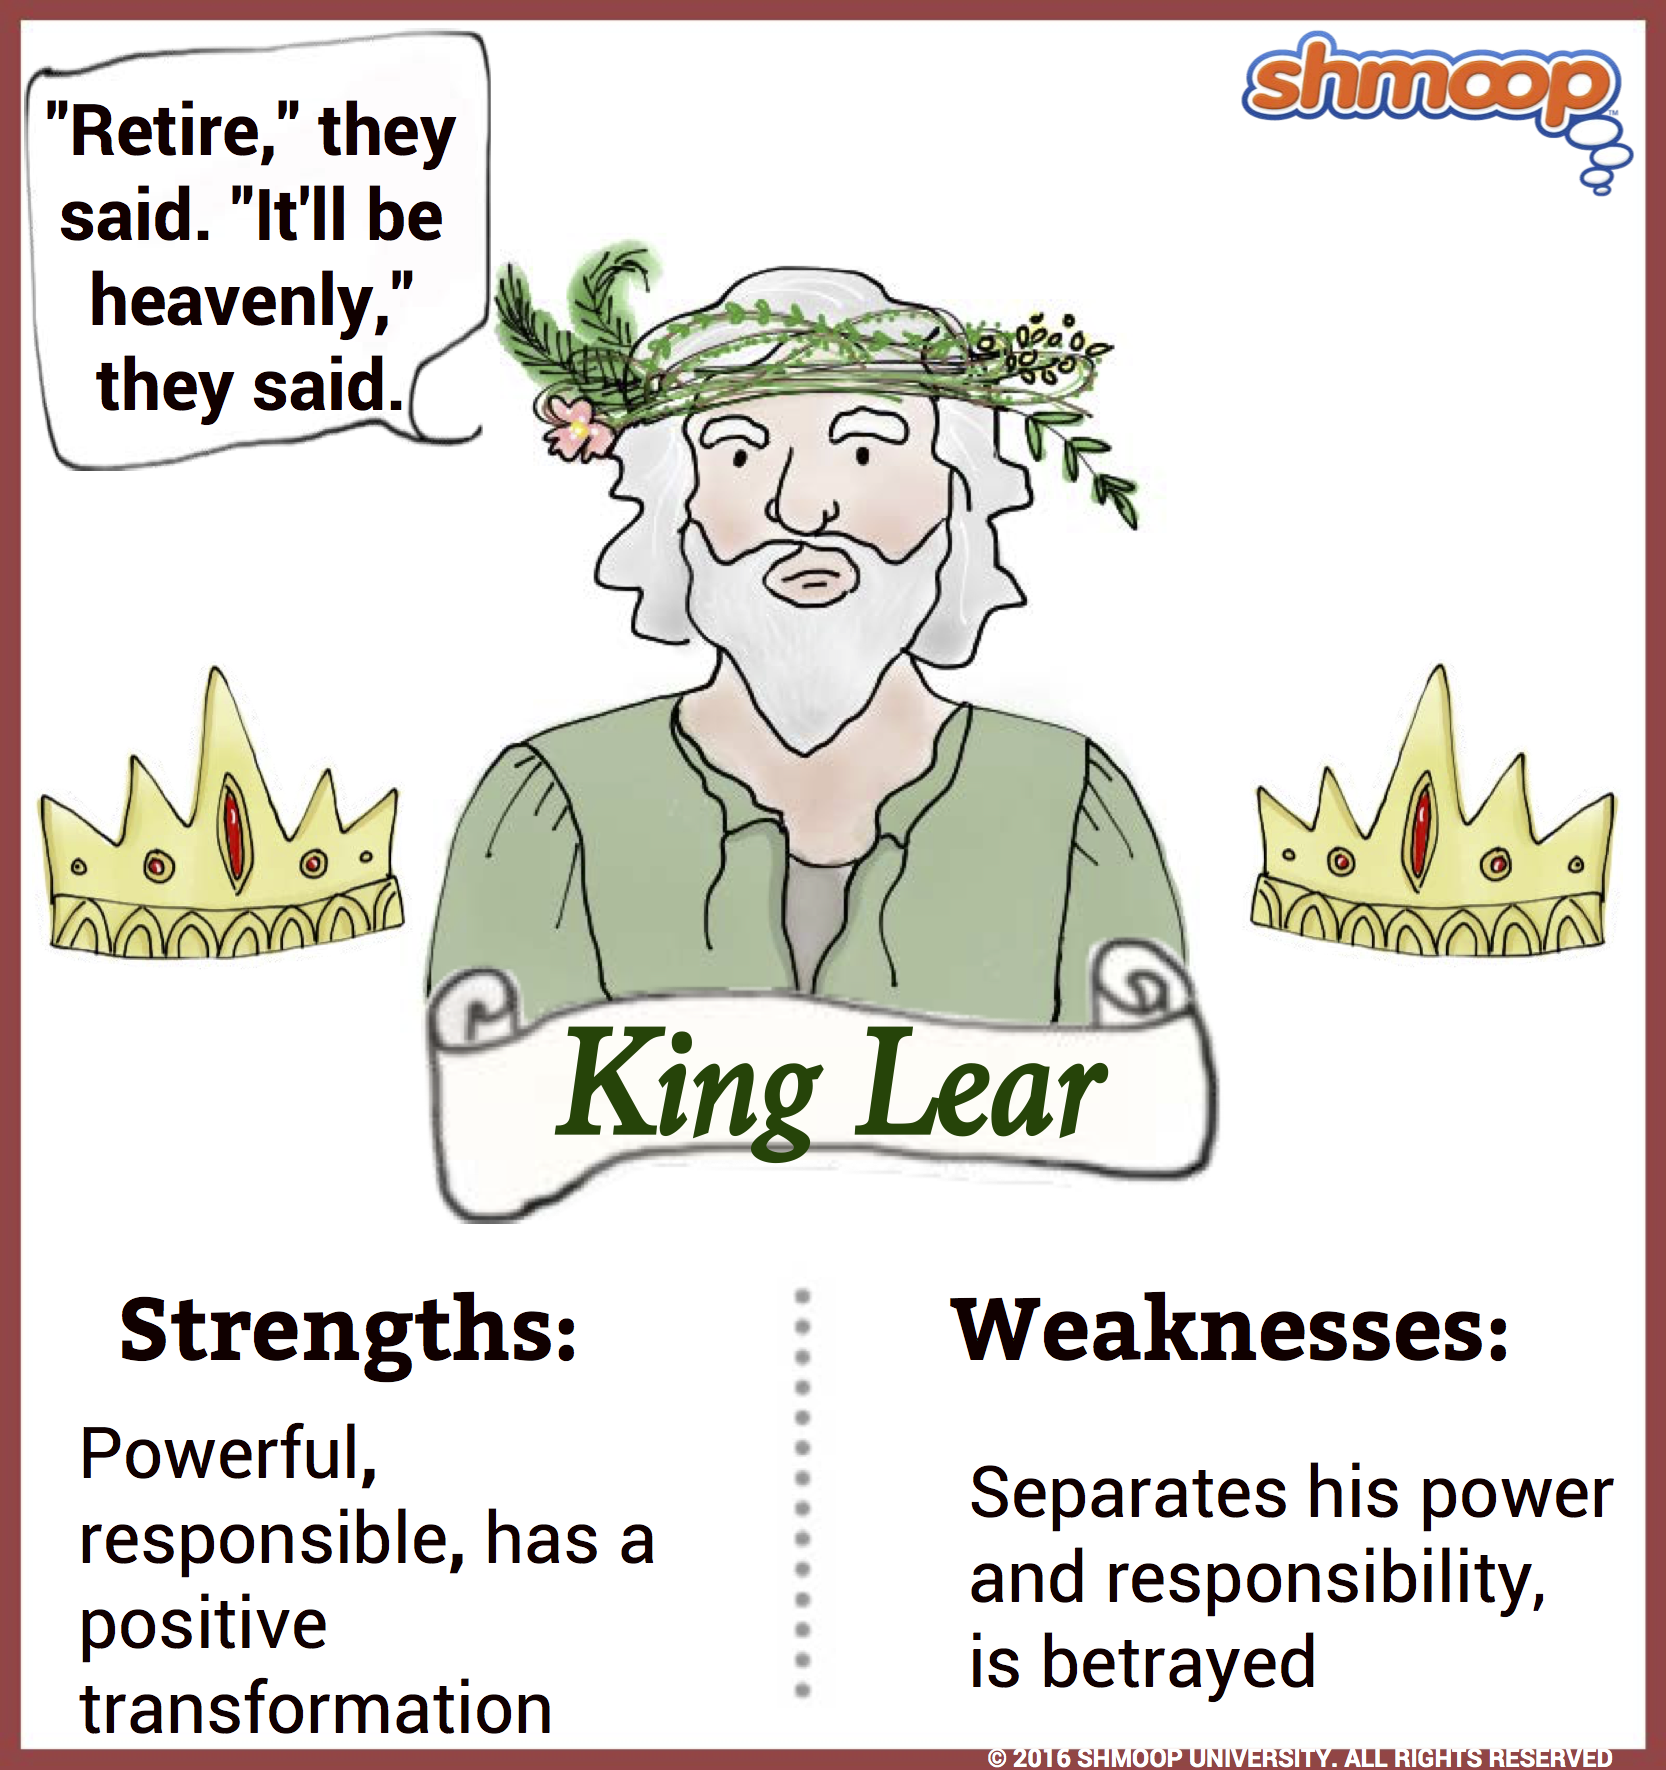 proving king lear is a tragedy essay Free king lear tragedy papers free king lear essays: the tragedy of king lear character's actions prove futile as tragedy befalls them lear loses his.